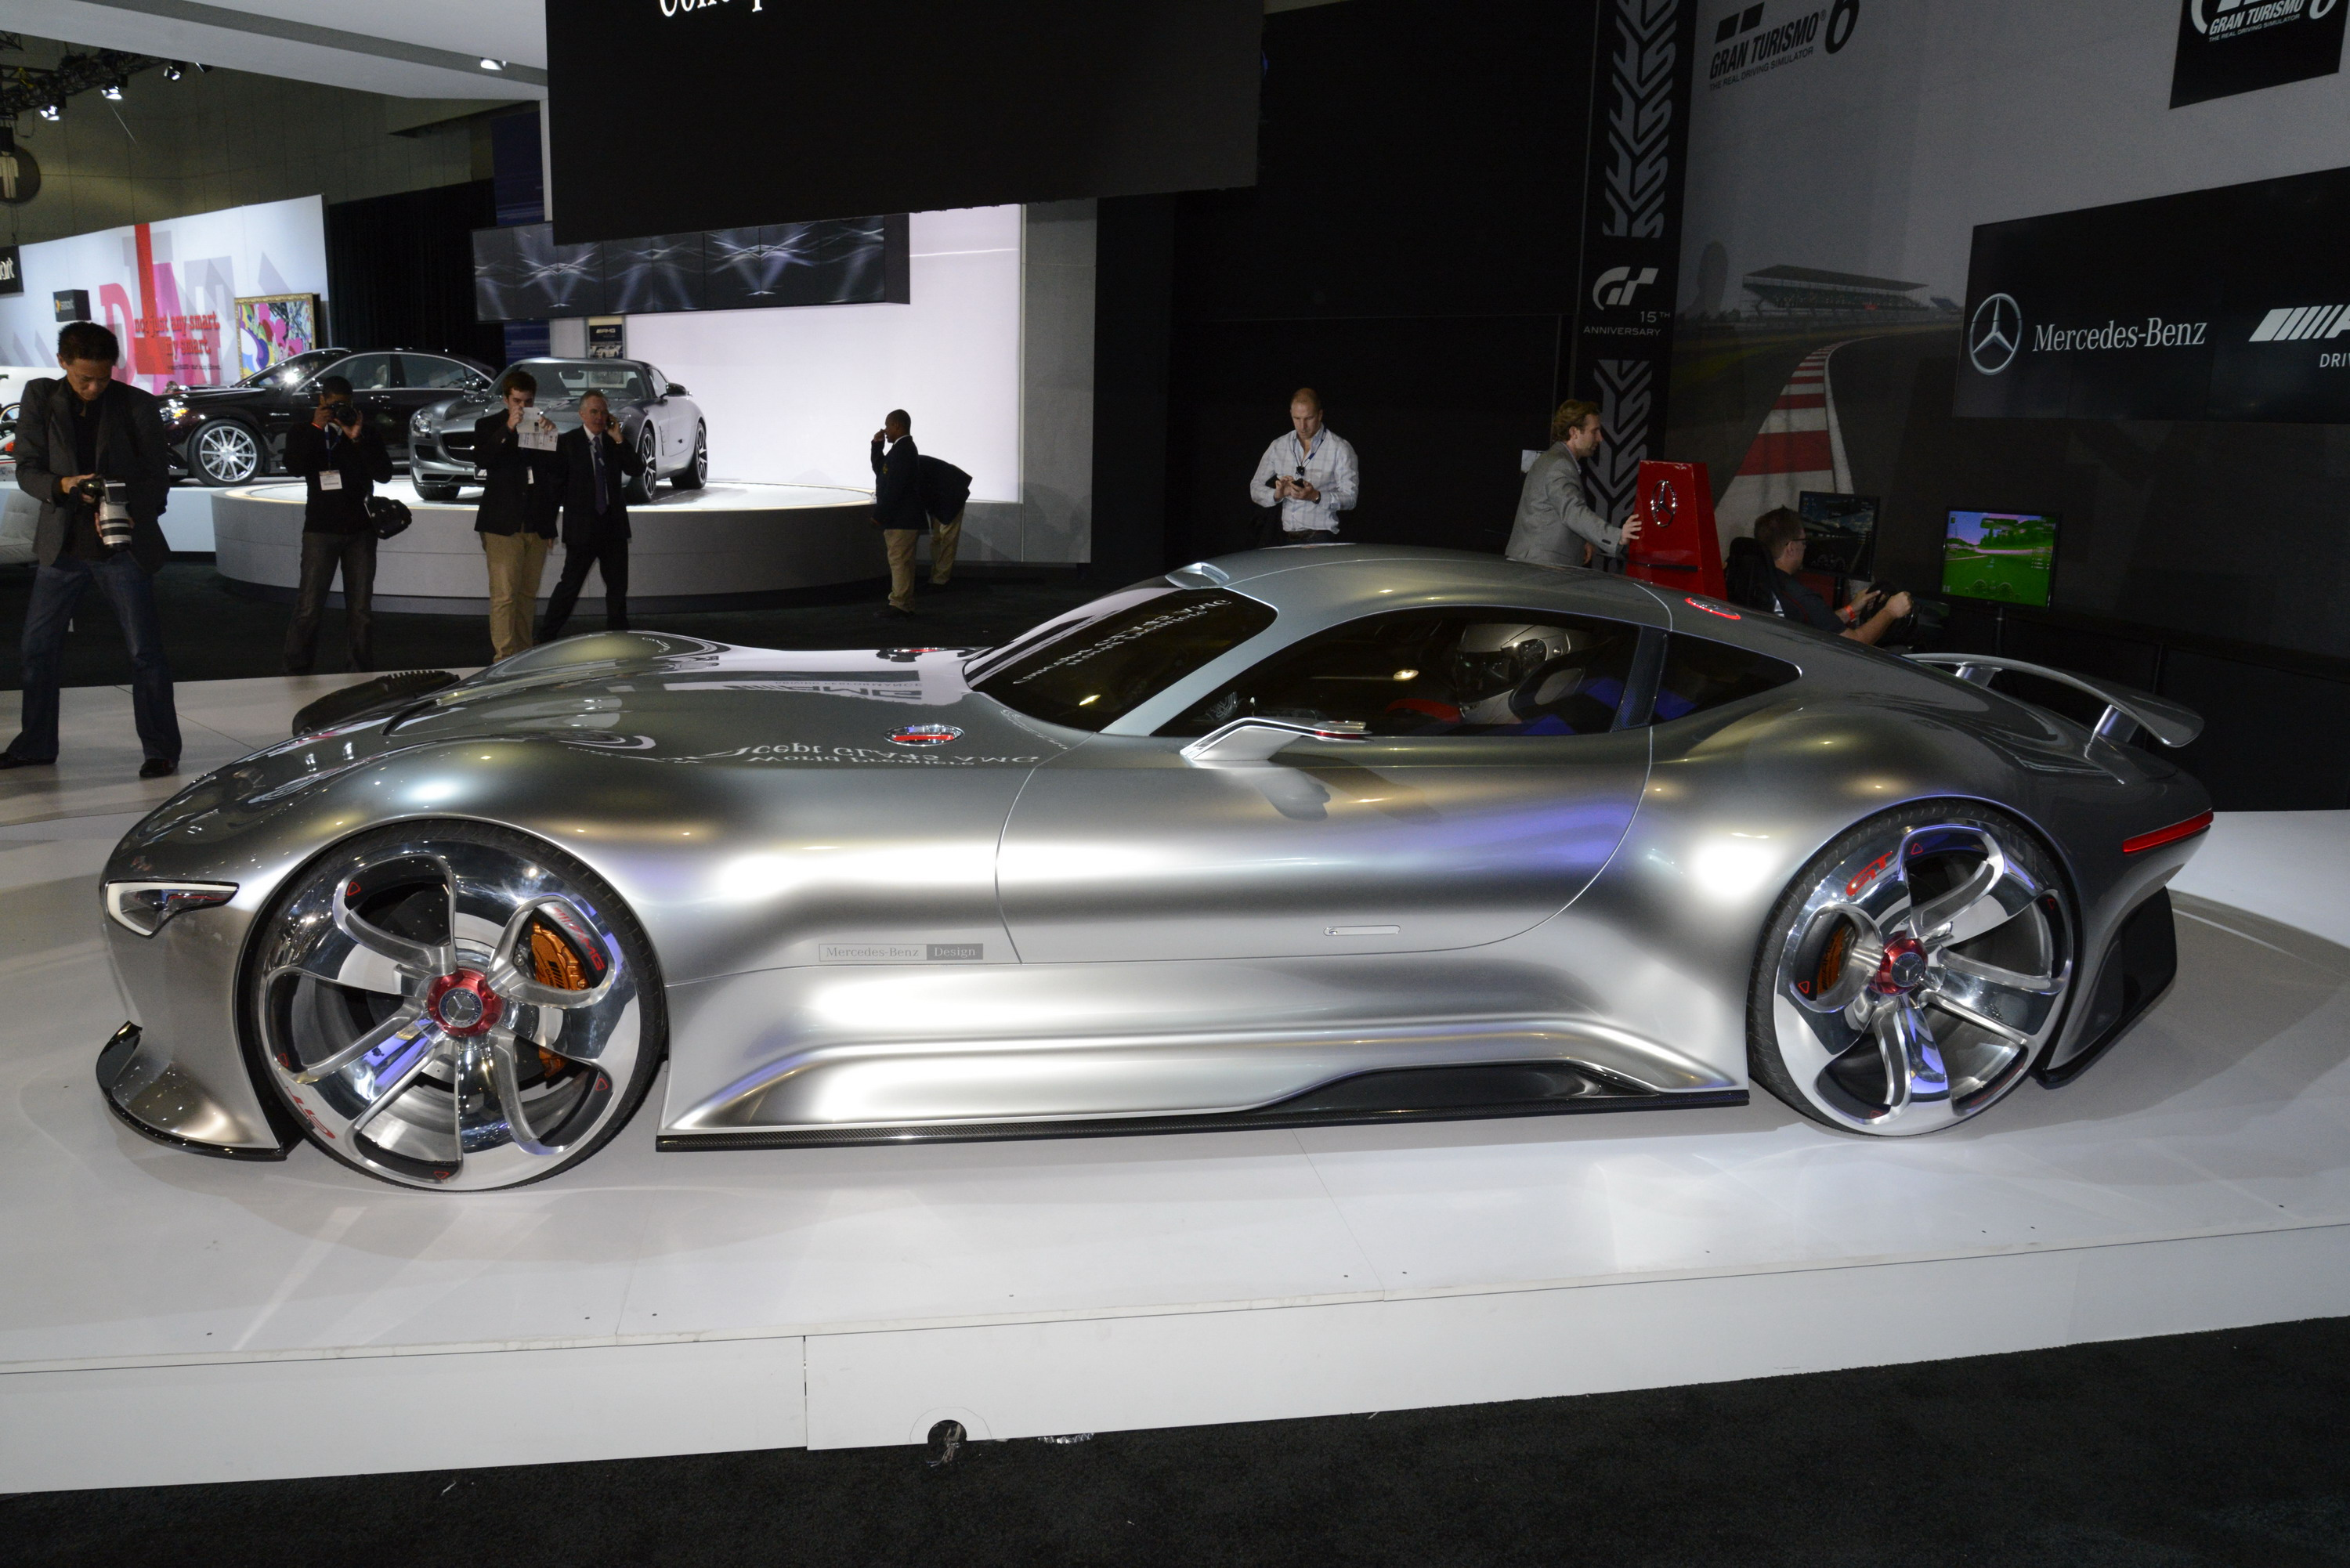 2013 Mercedes Benz Vision Gran Turismo Concept Review   Top Speed. »